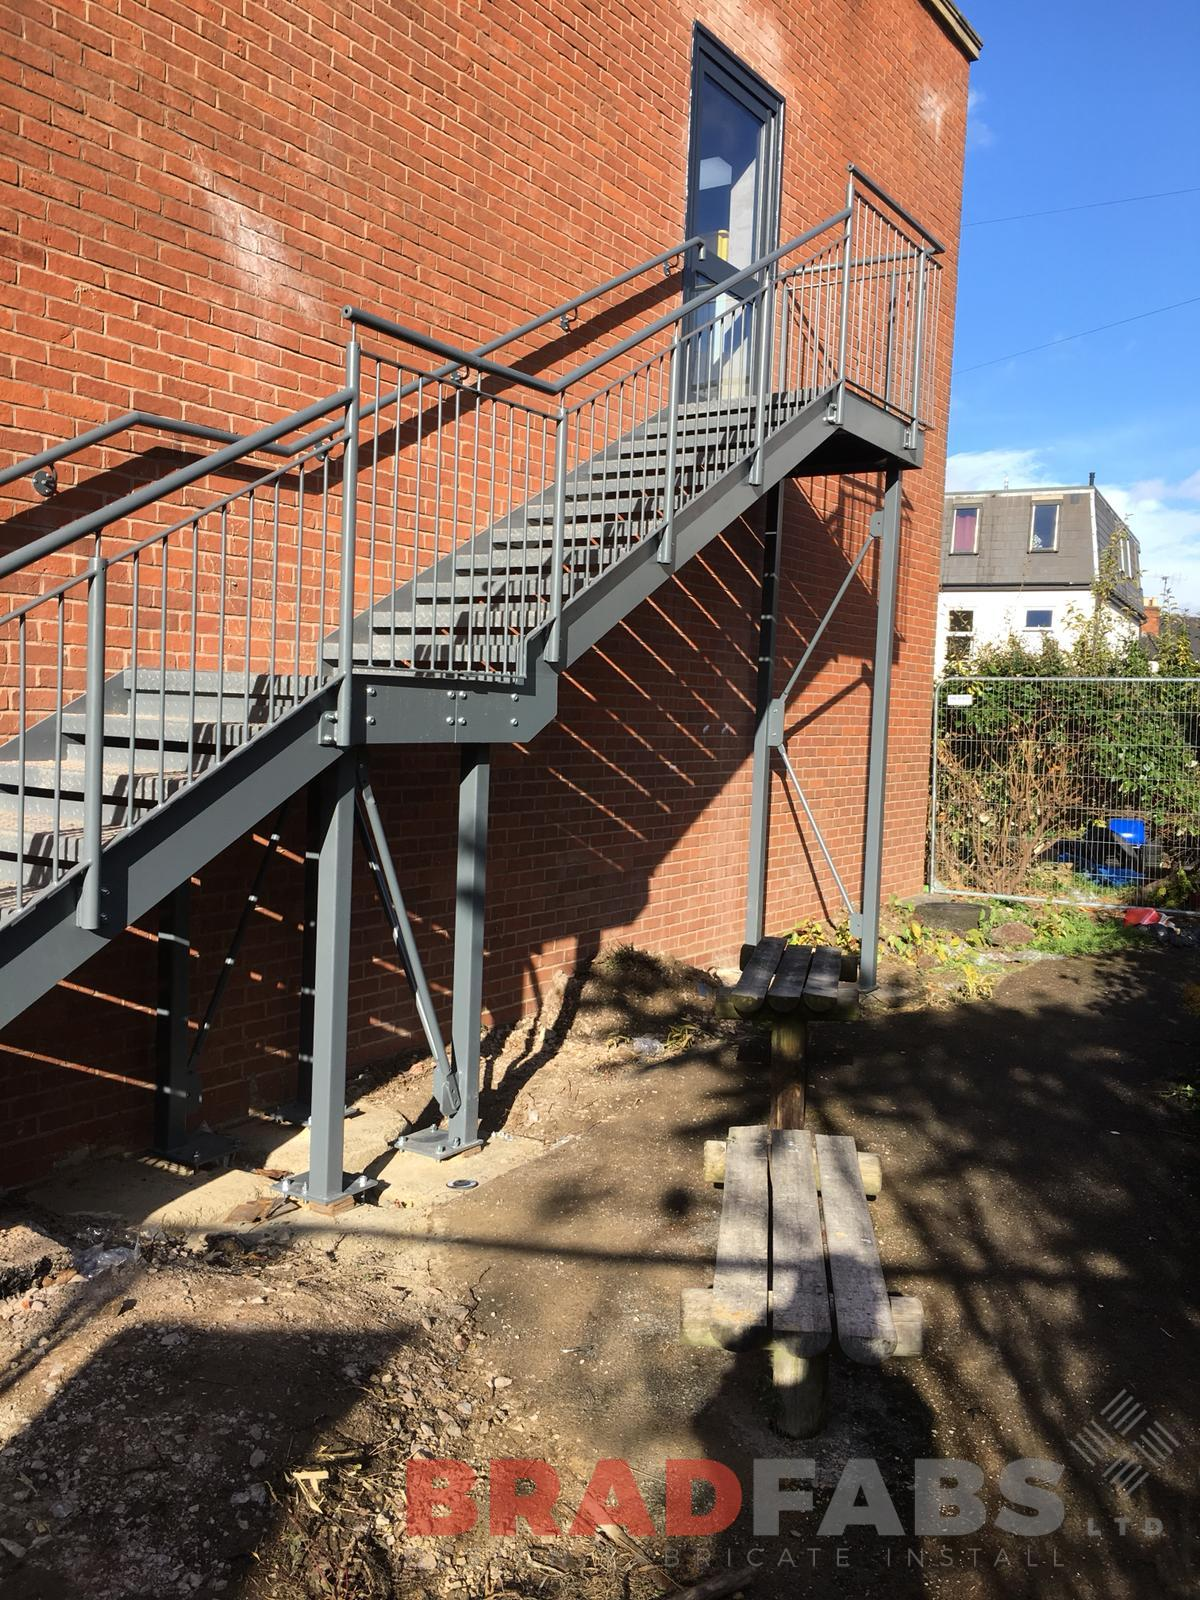 Steel Fire Escape installed by Bradfabs